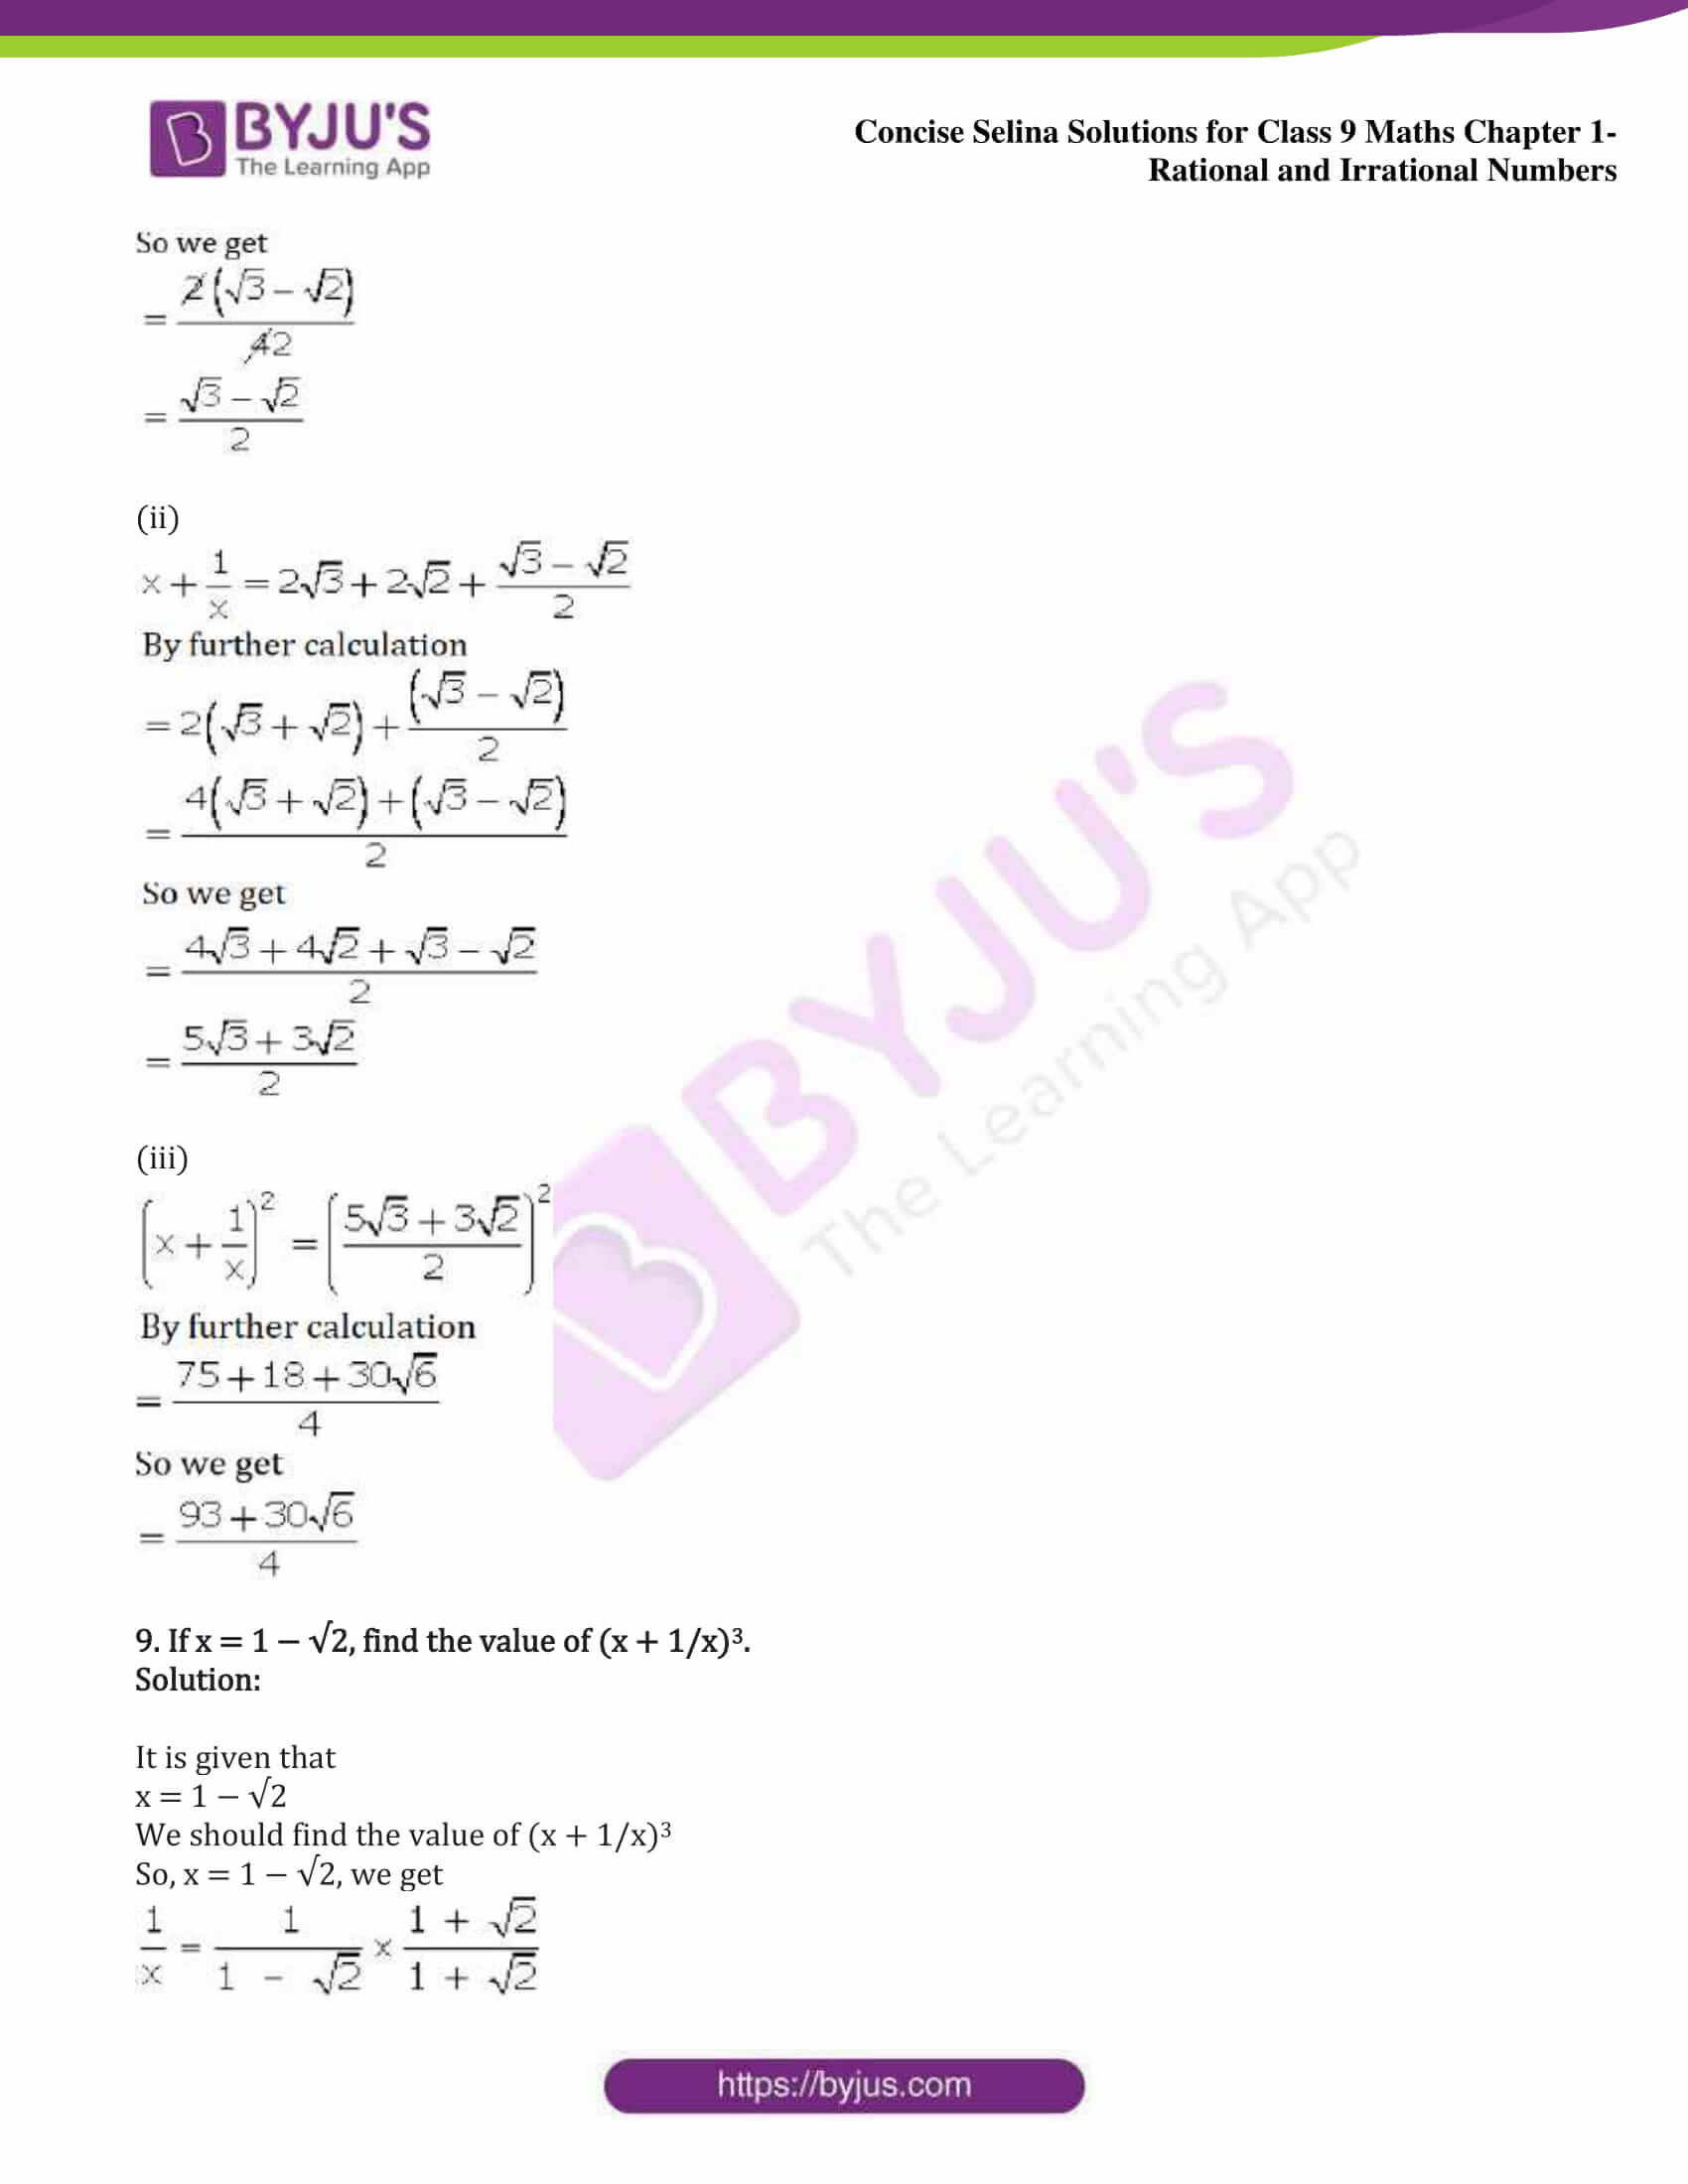 icse class 9 maths may13 selina solutions chapter 1 rational and irrational numbers 26